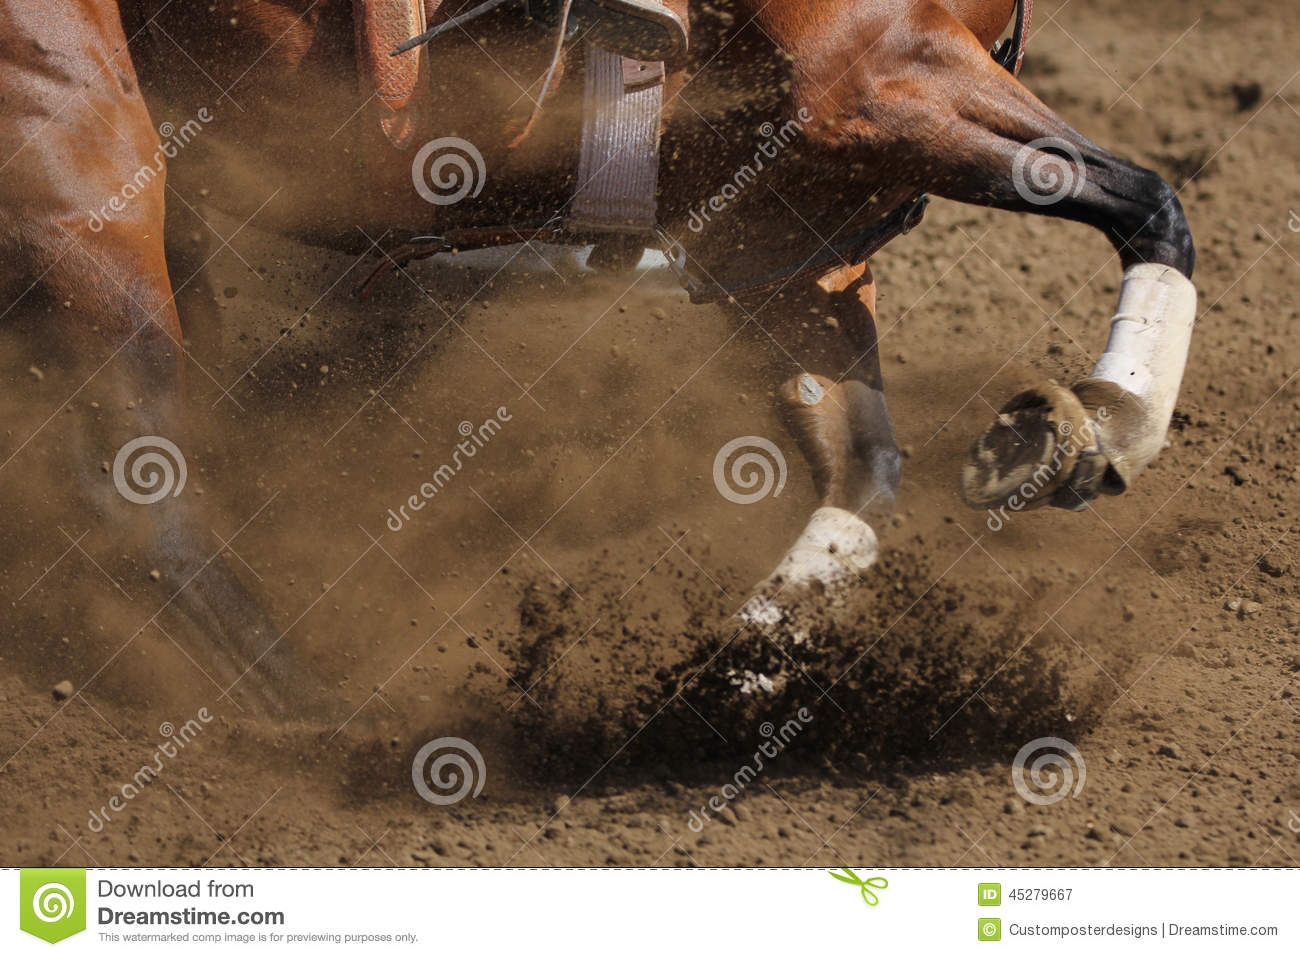 A close up view of a horse galloping.